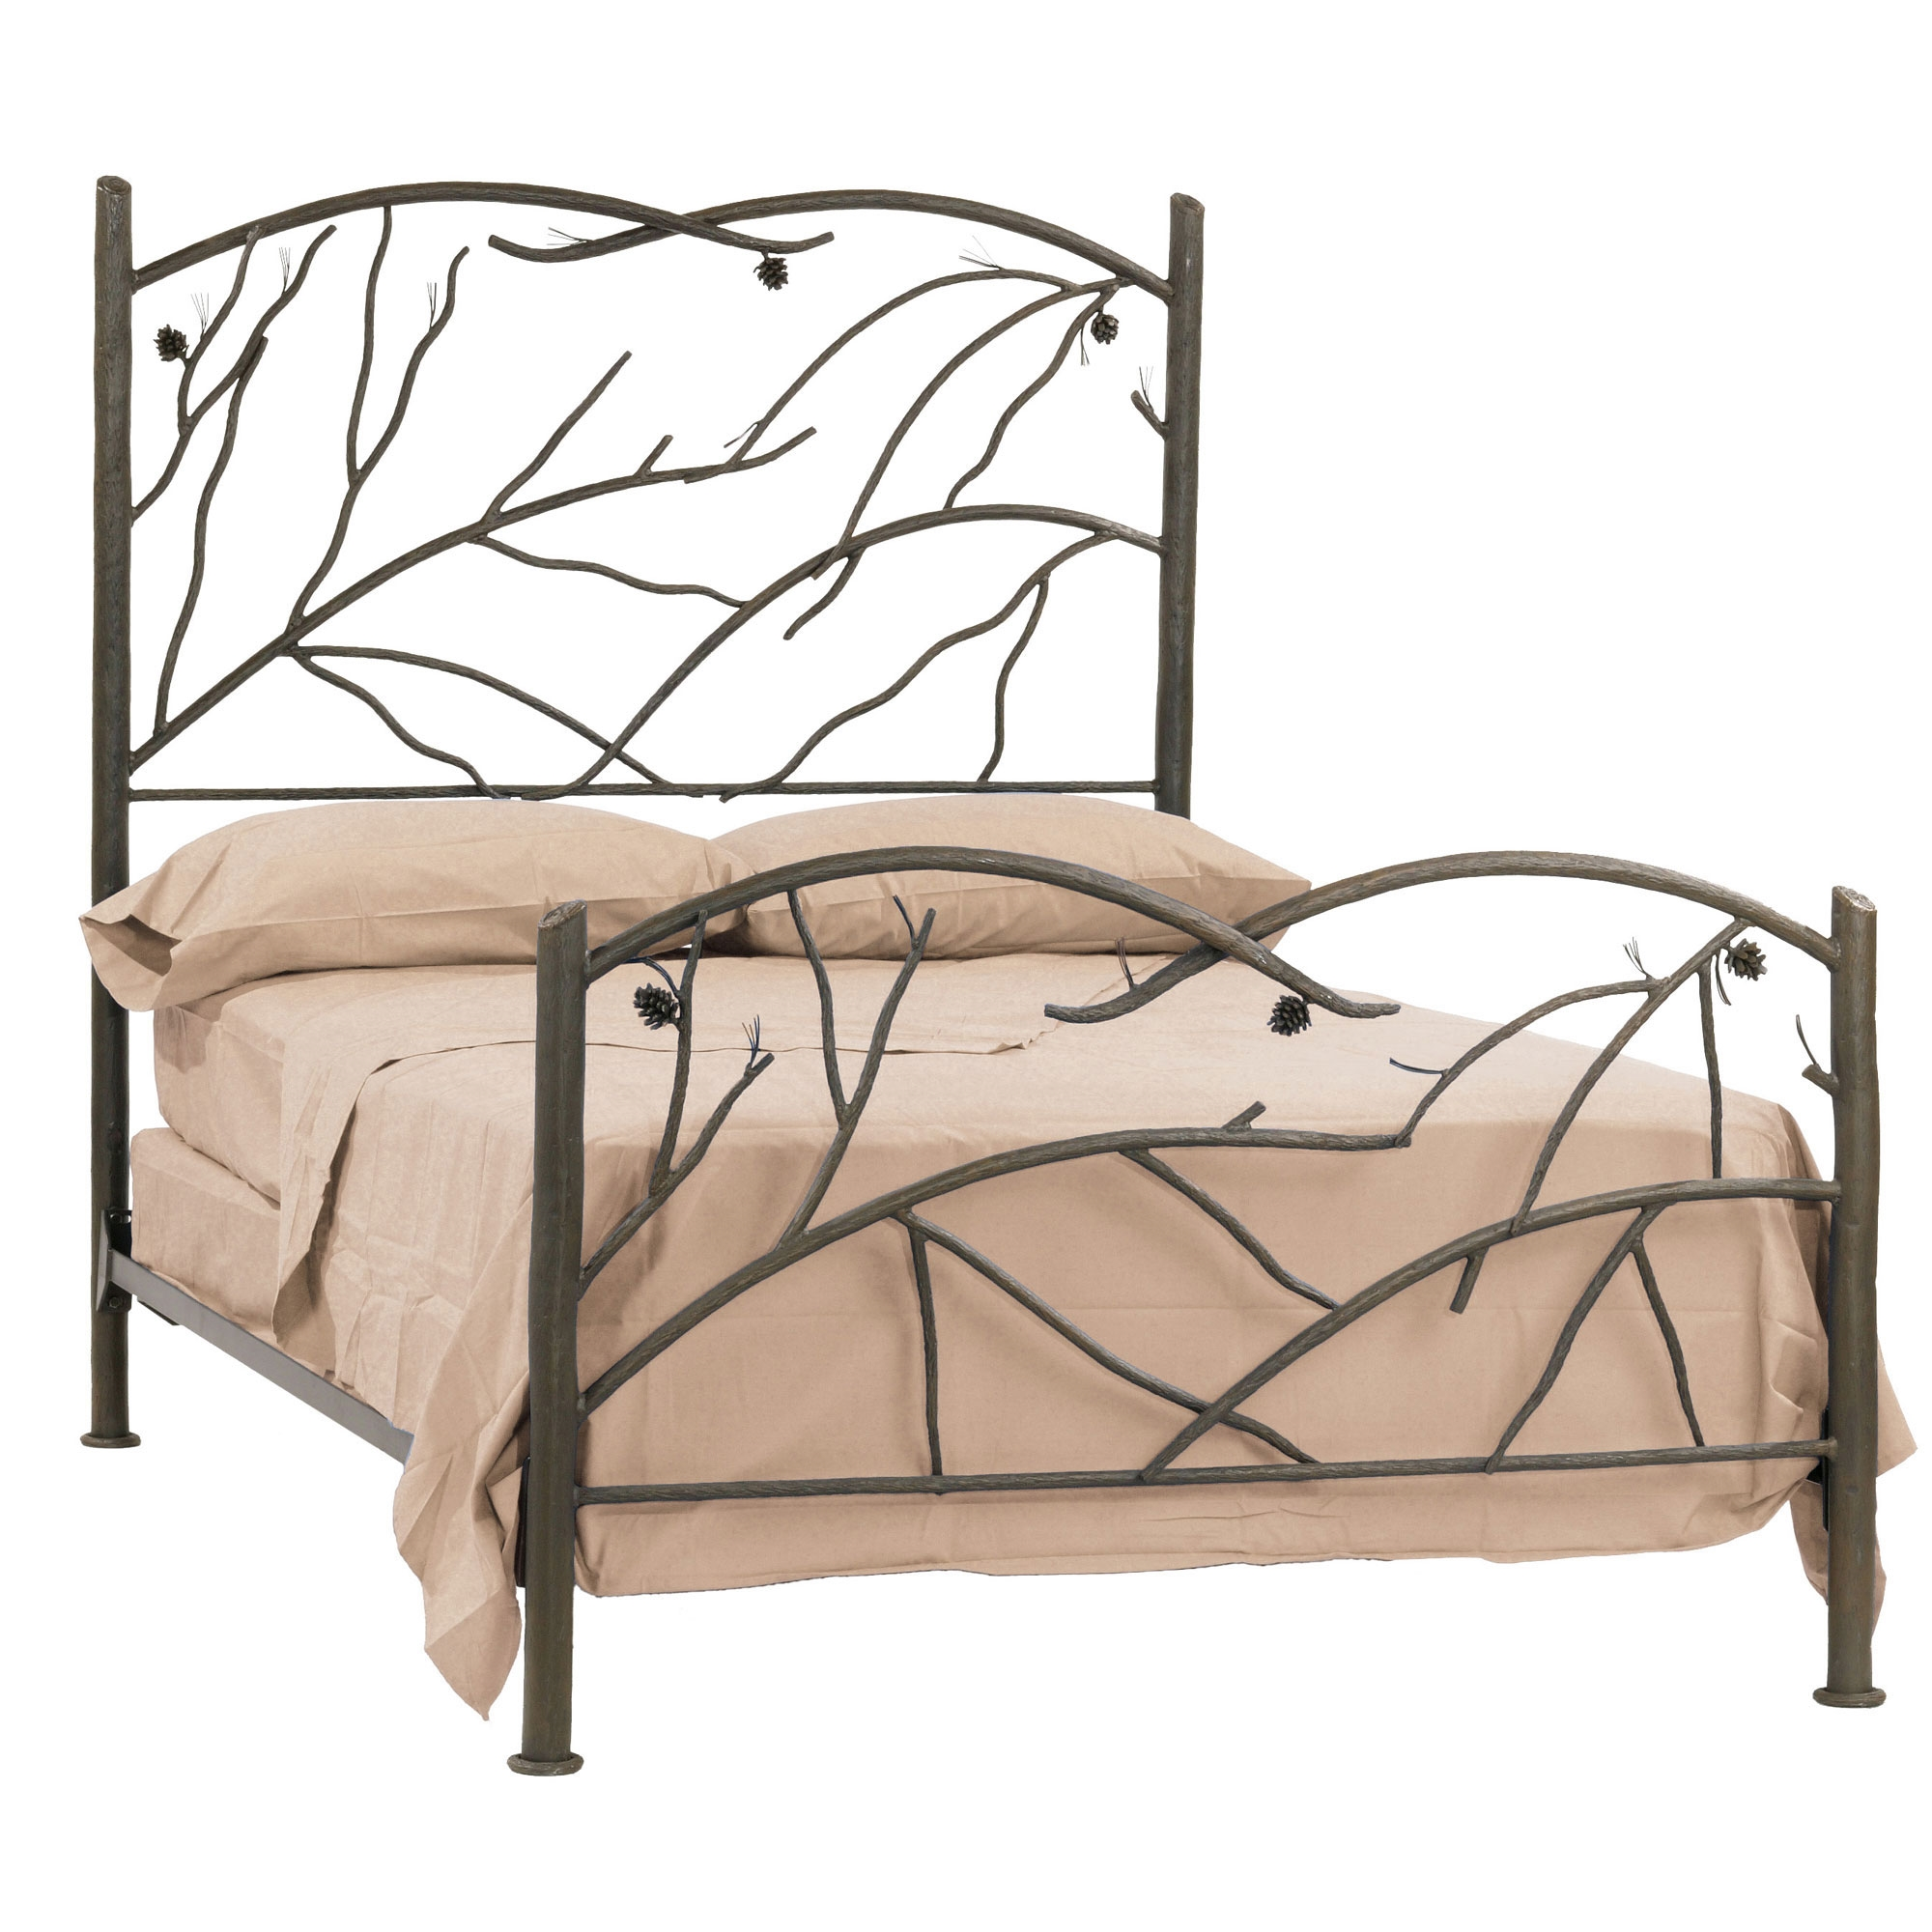 Metal Bed Headboard : Iron Beds And Headboards Queen Ornate Metal Headboard Footboard Bed ...